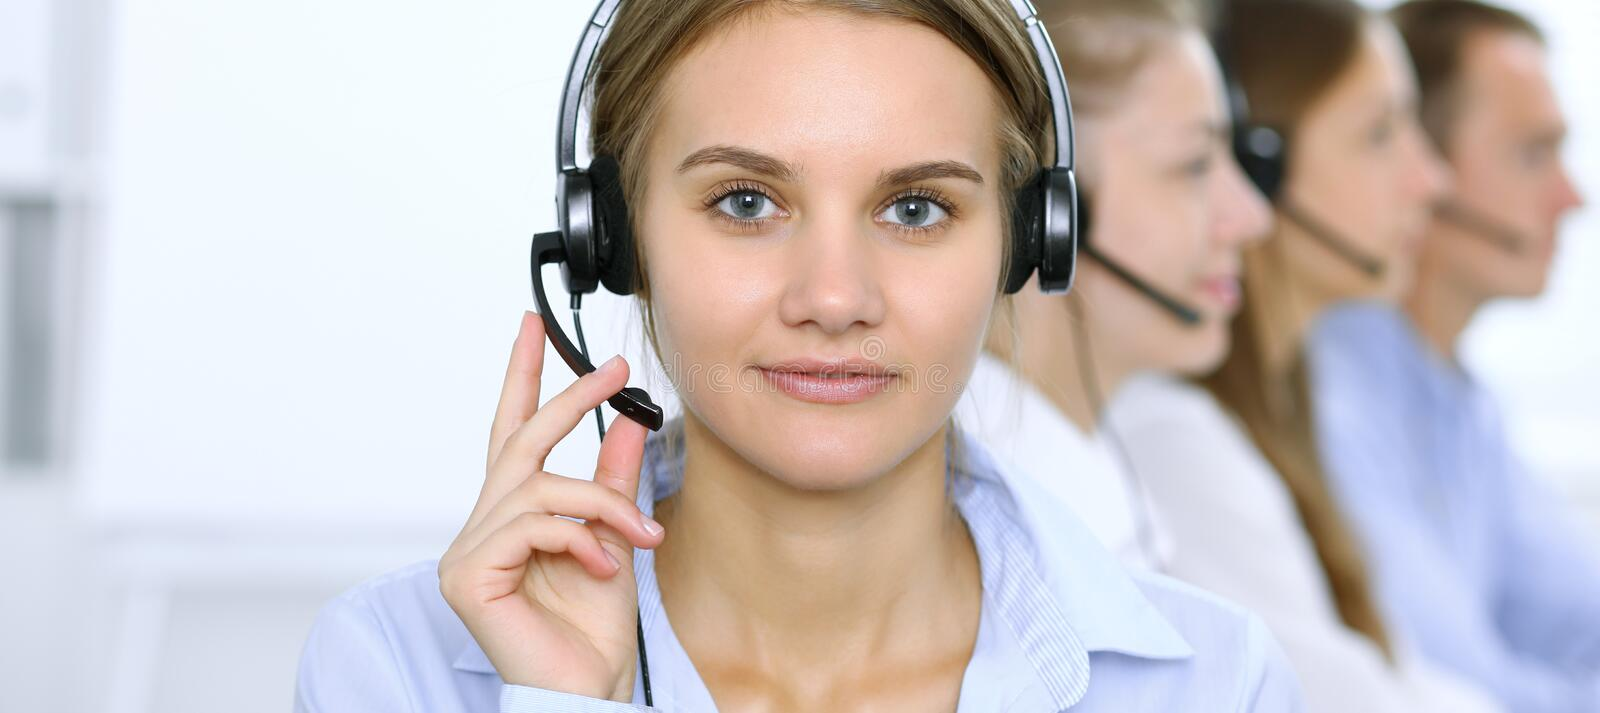 Call center operator in headset while consulting client. Telemarketing or phone sales.  stock image